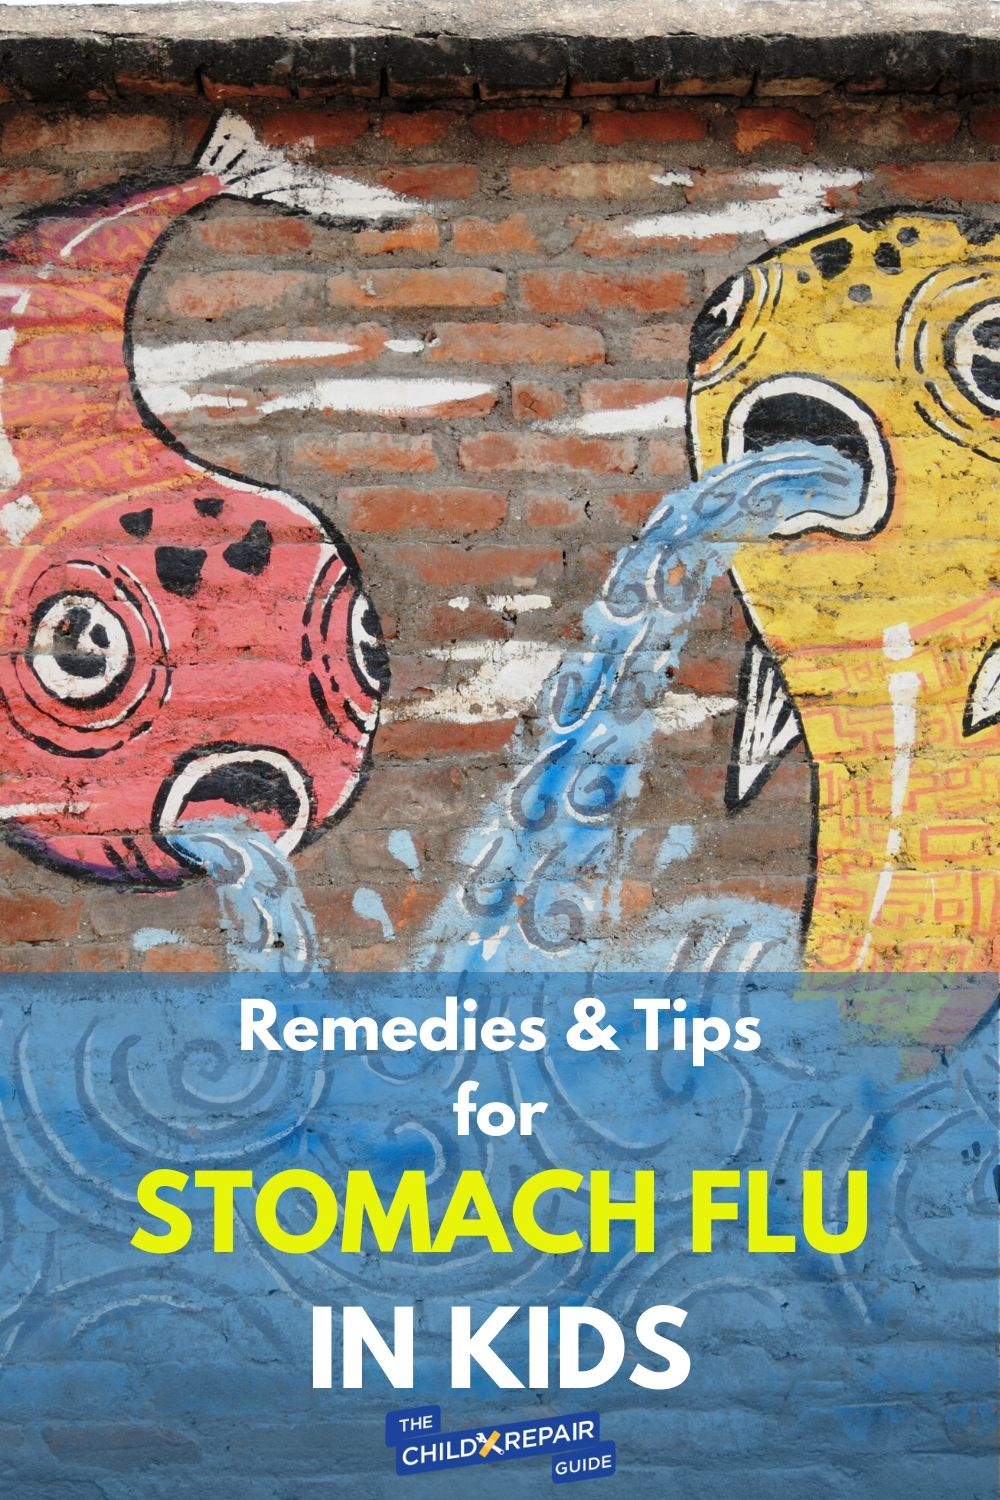 Remedies, what to watch for, what to expect, and how to make your little one feel better when she has the stomach flu!